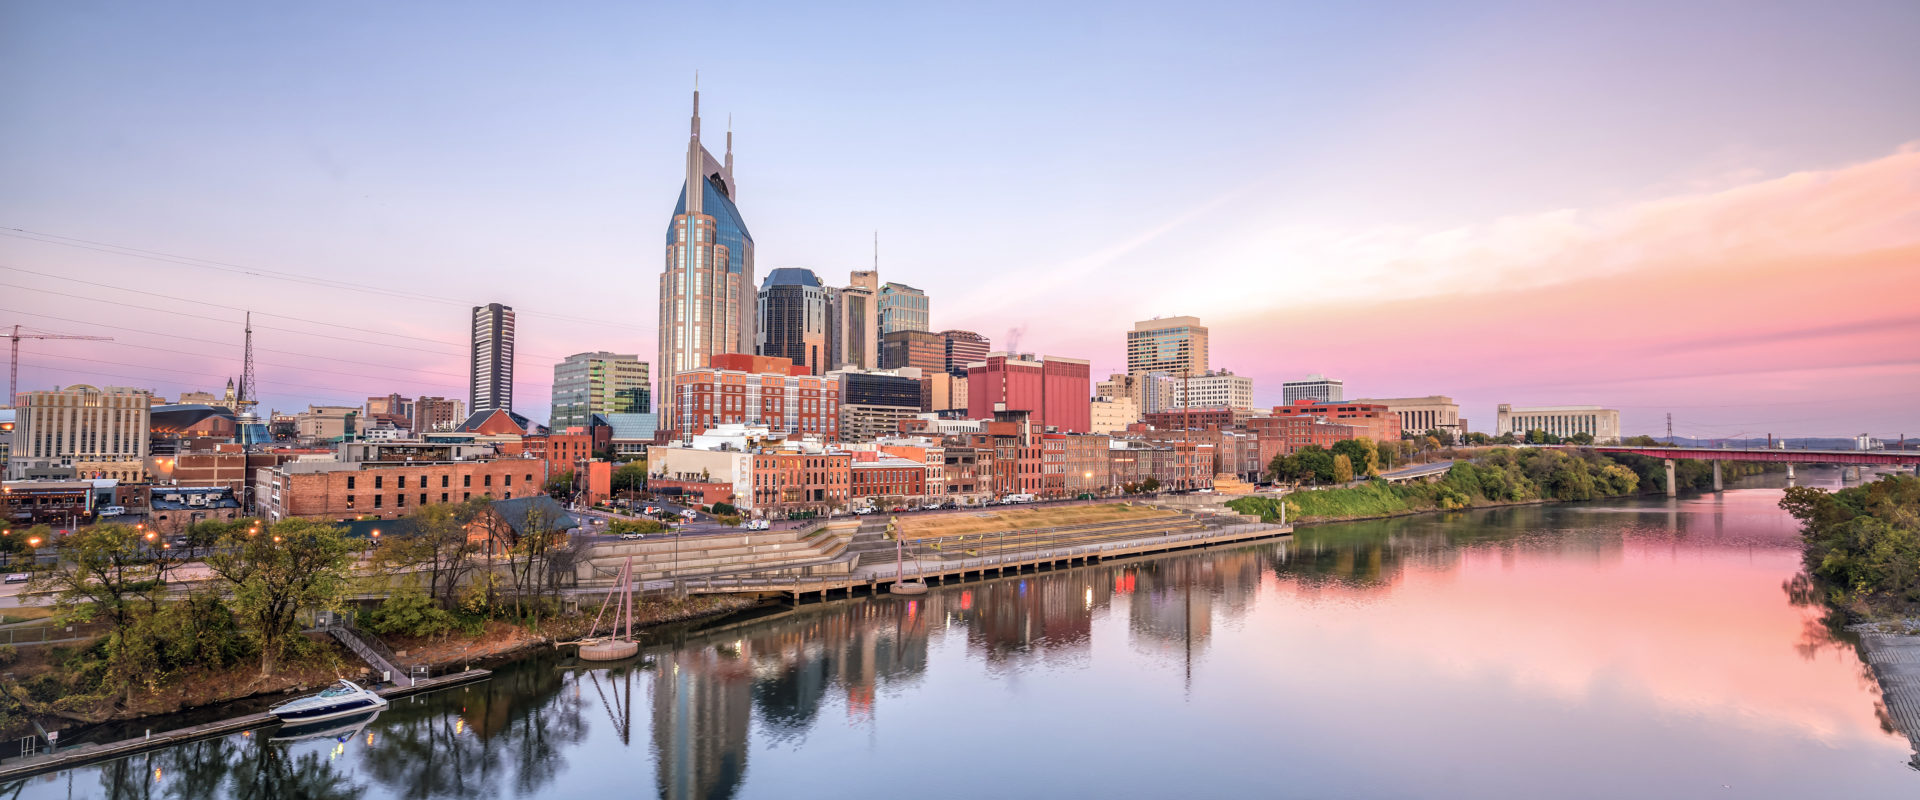 Stanton Chase Expands with New Directors, Opens Memphis Office Cover Image